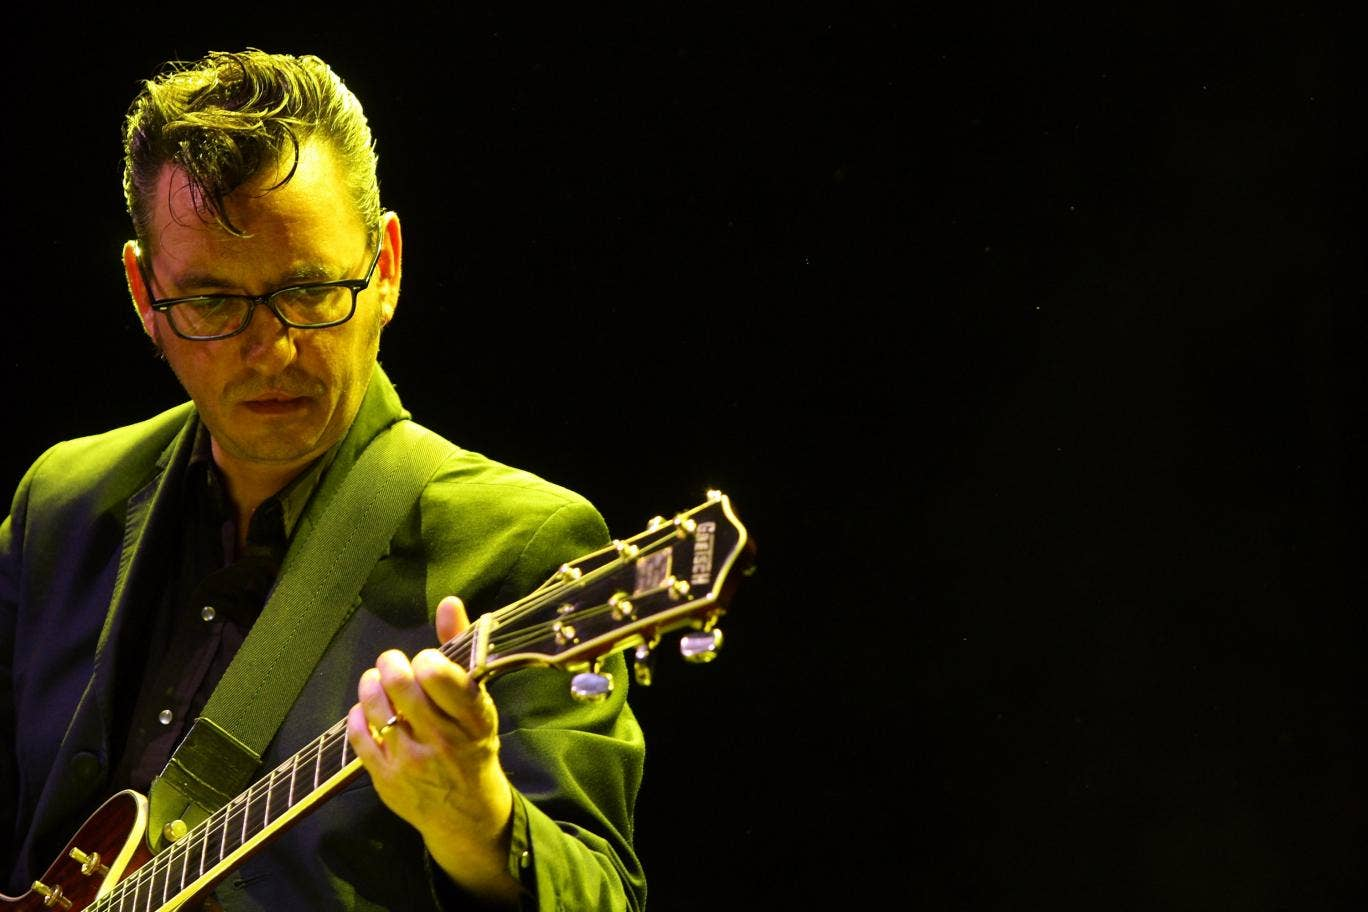 Richard Hawley received a nomination for Best Male, five years after his last nomination